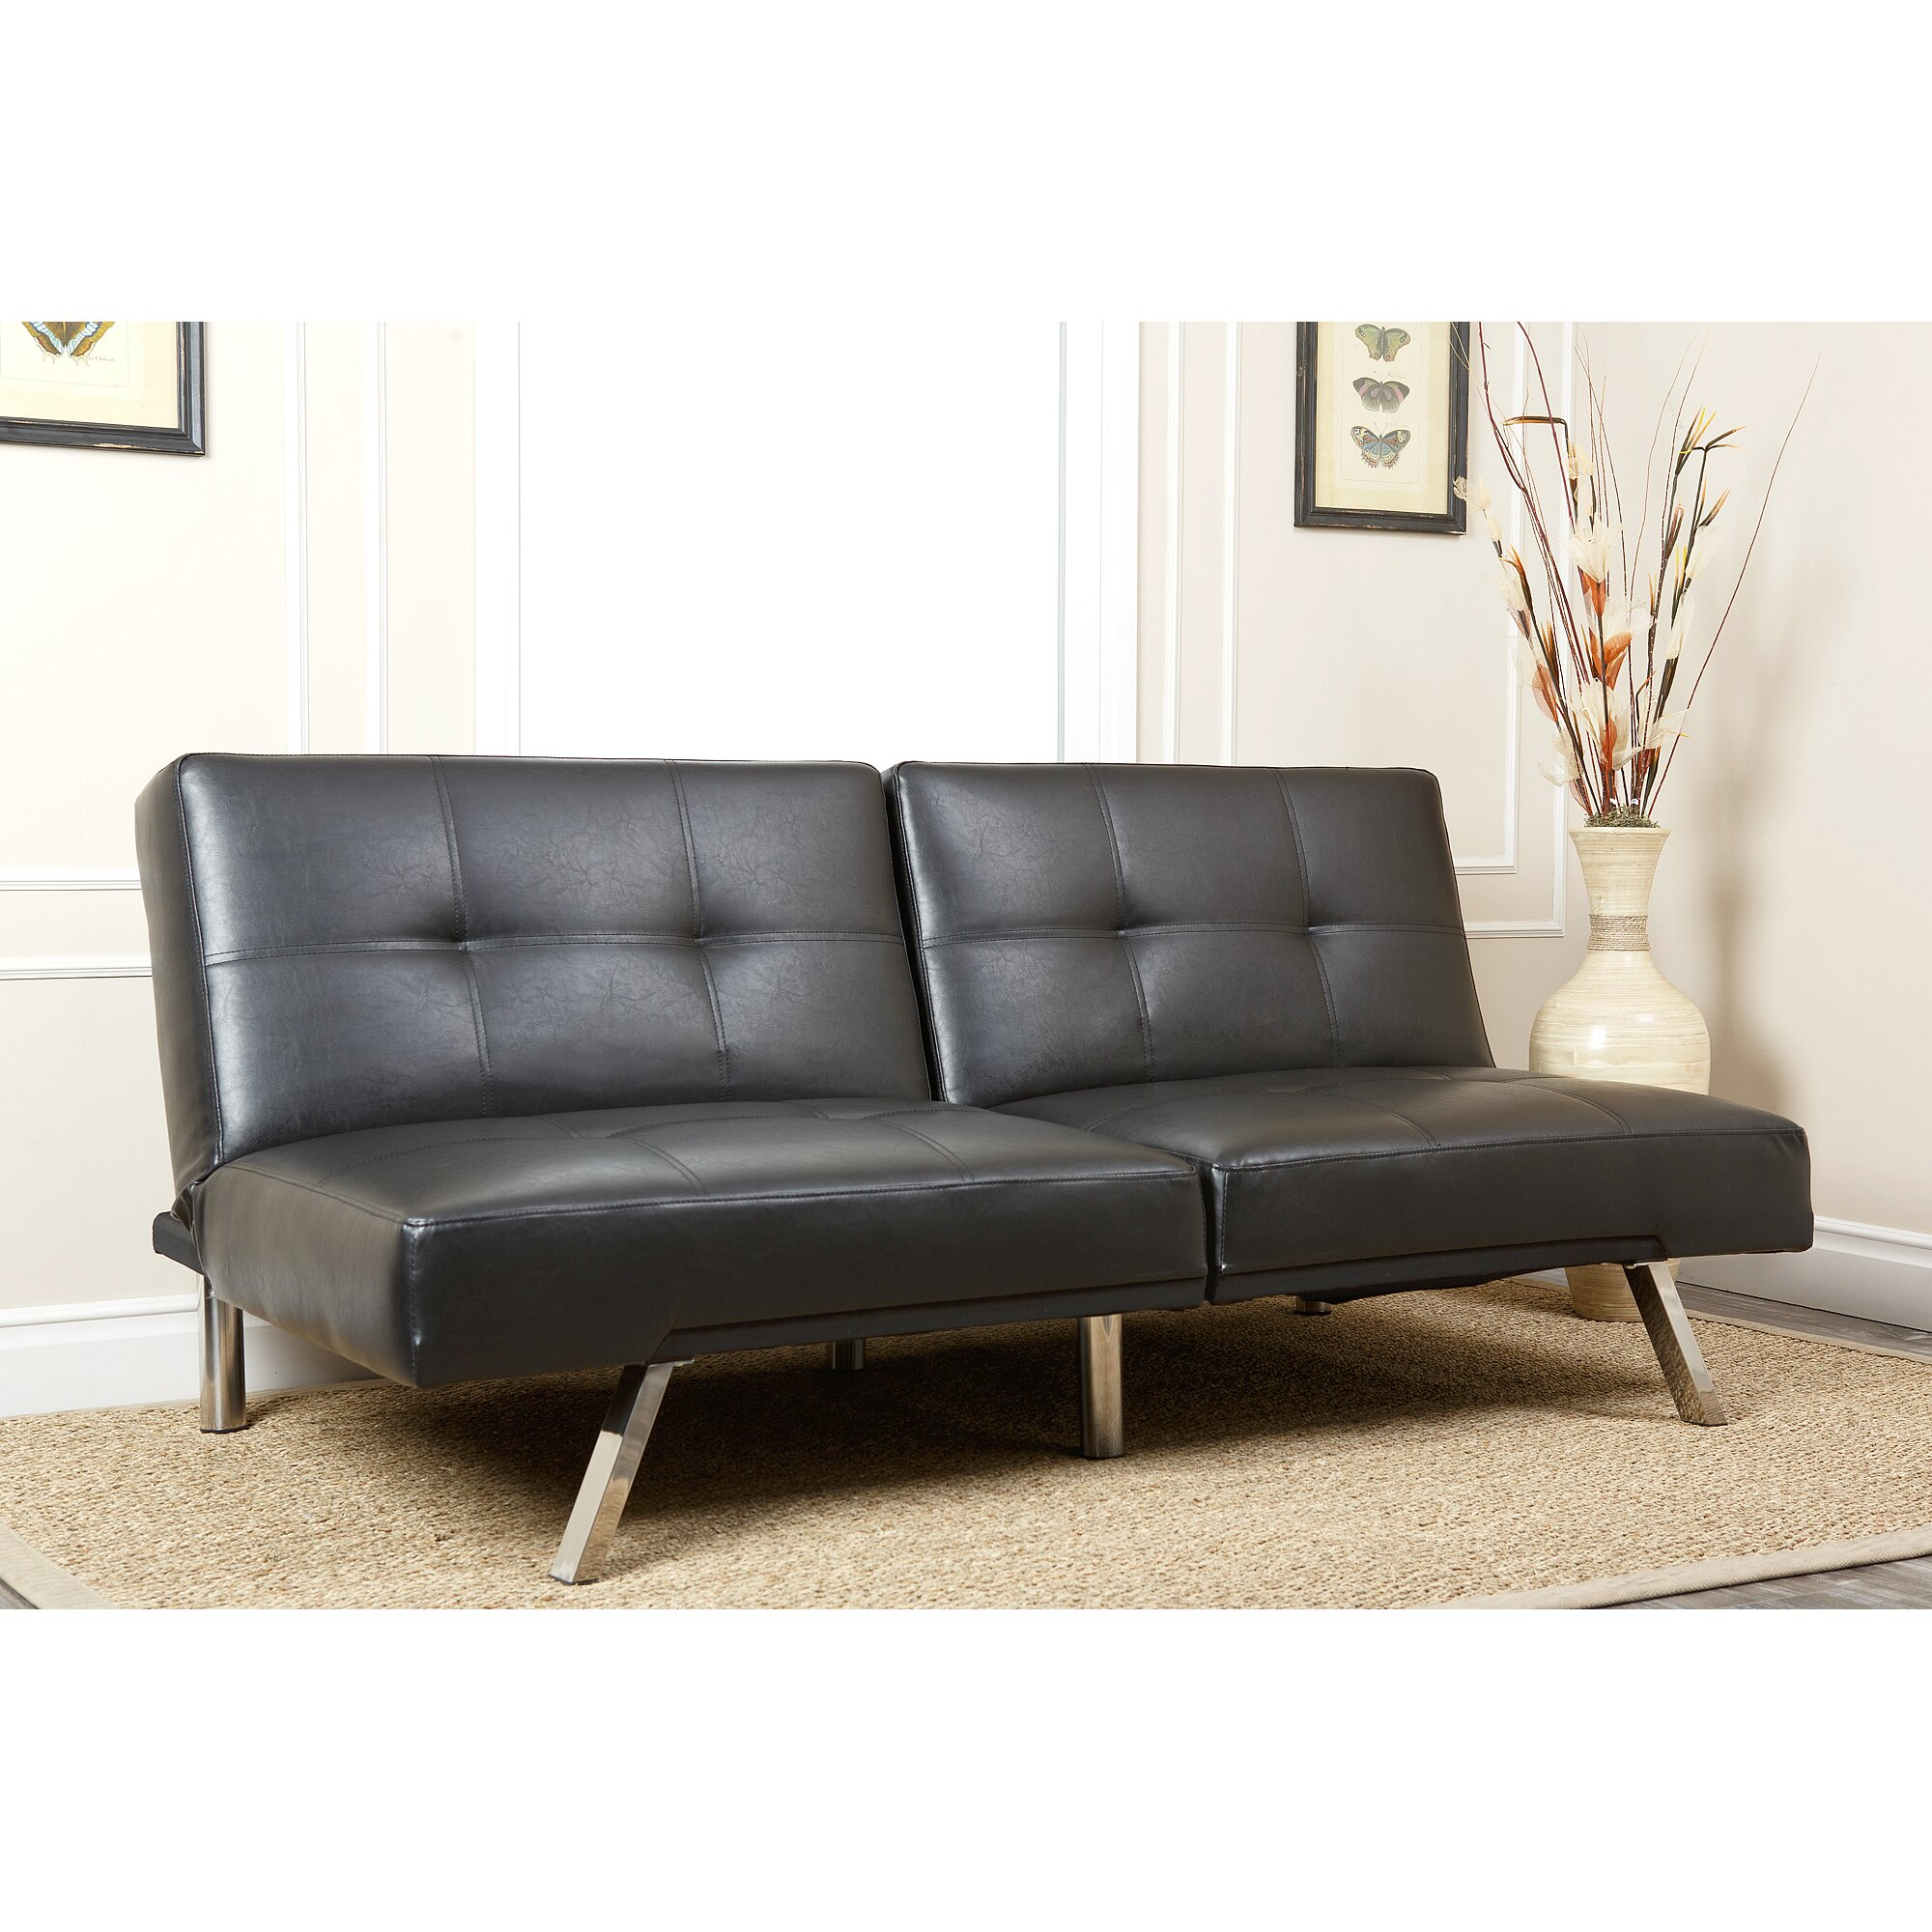 Abbyson living aspen convertible sleeper sofa reviews for Convertible furniture